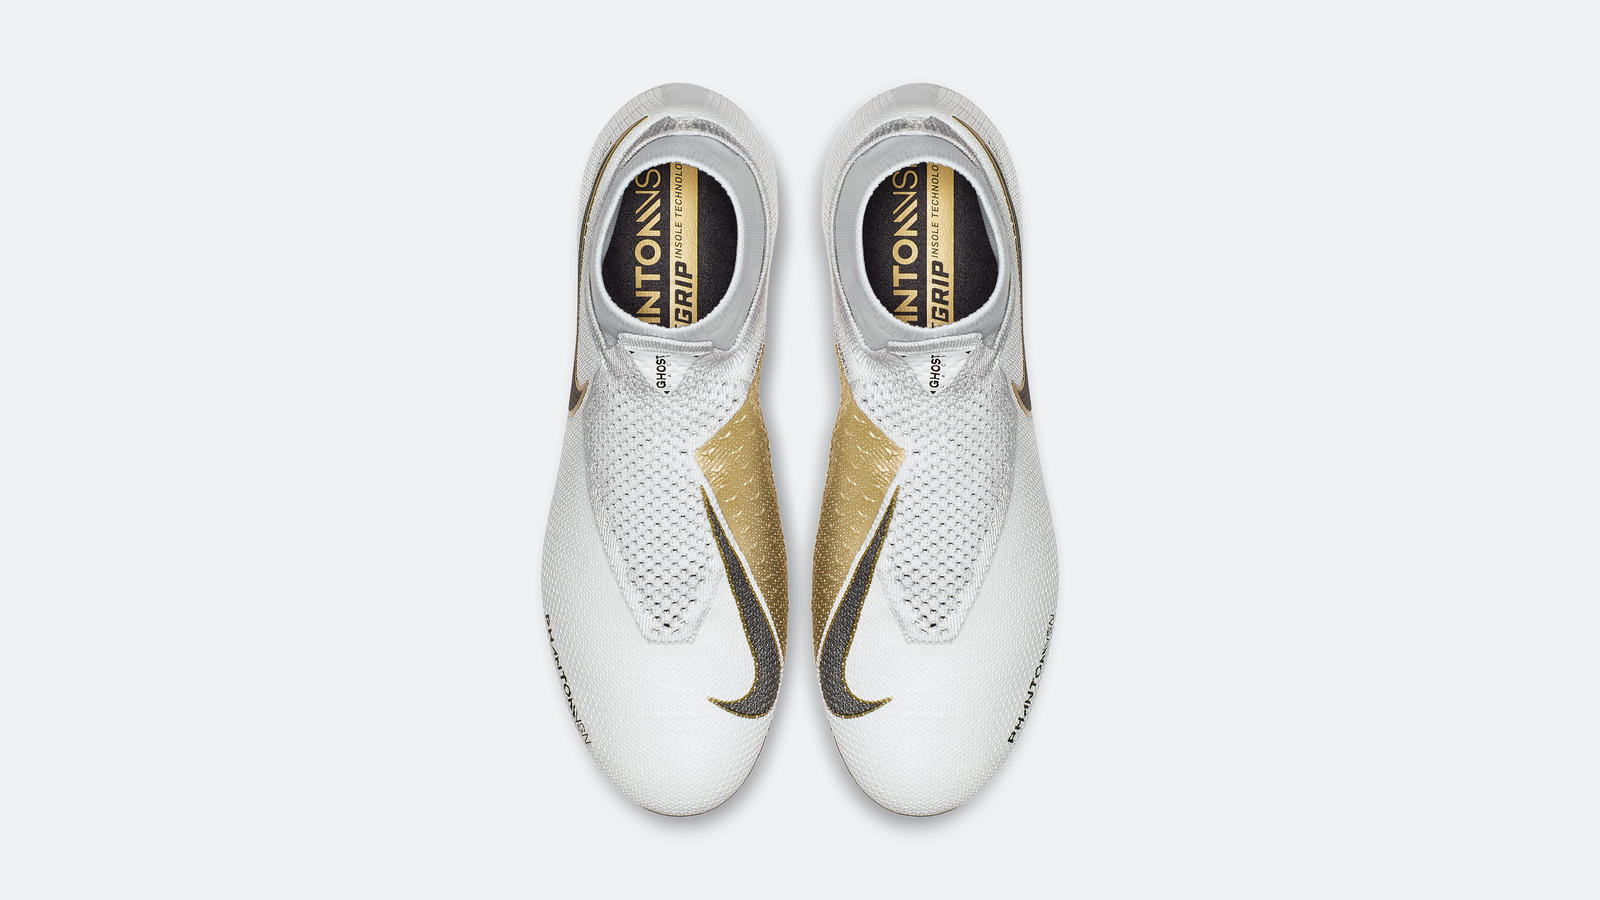 Nikefootball goldphantom 2018 re 4 hd 1600